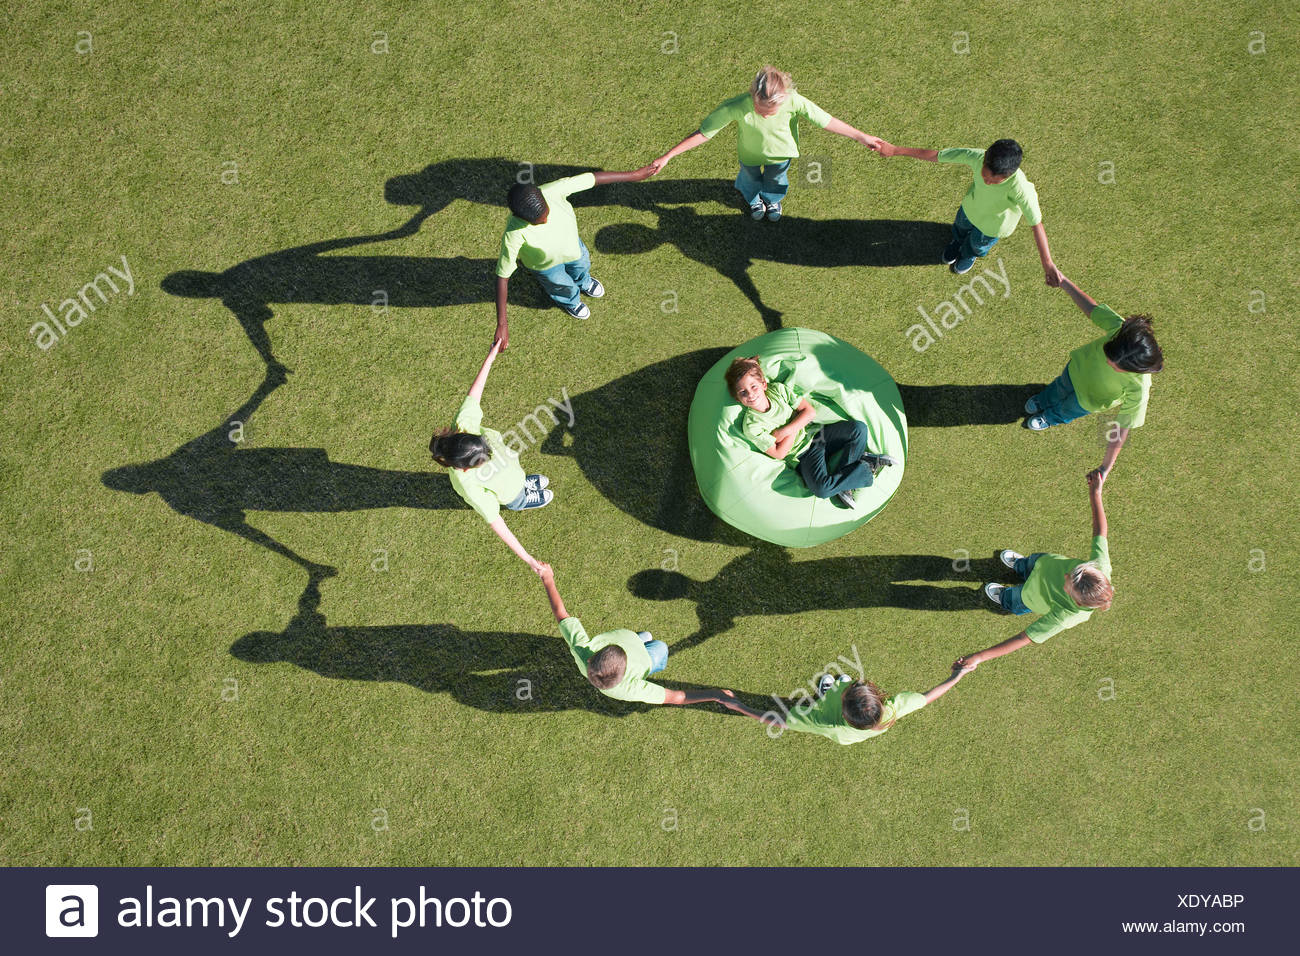 Group of children holding hands around boy in bean bag - Stock Image